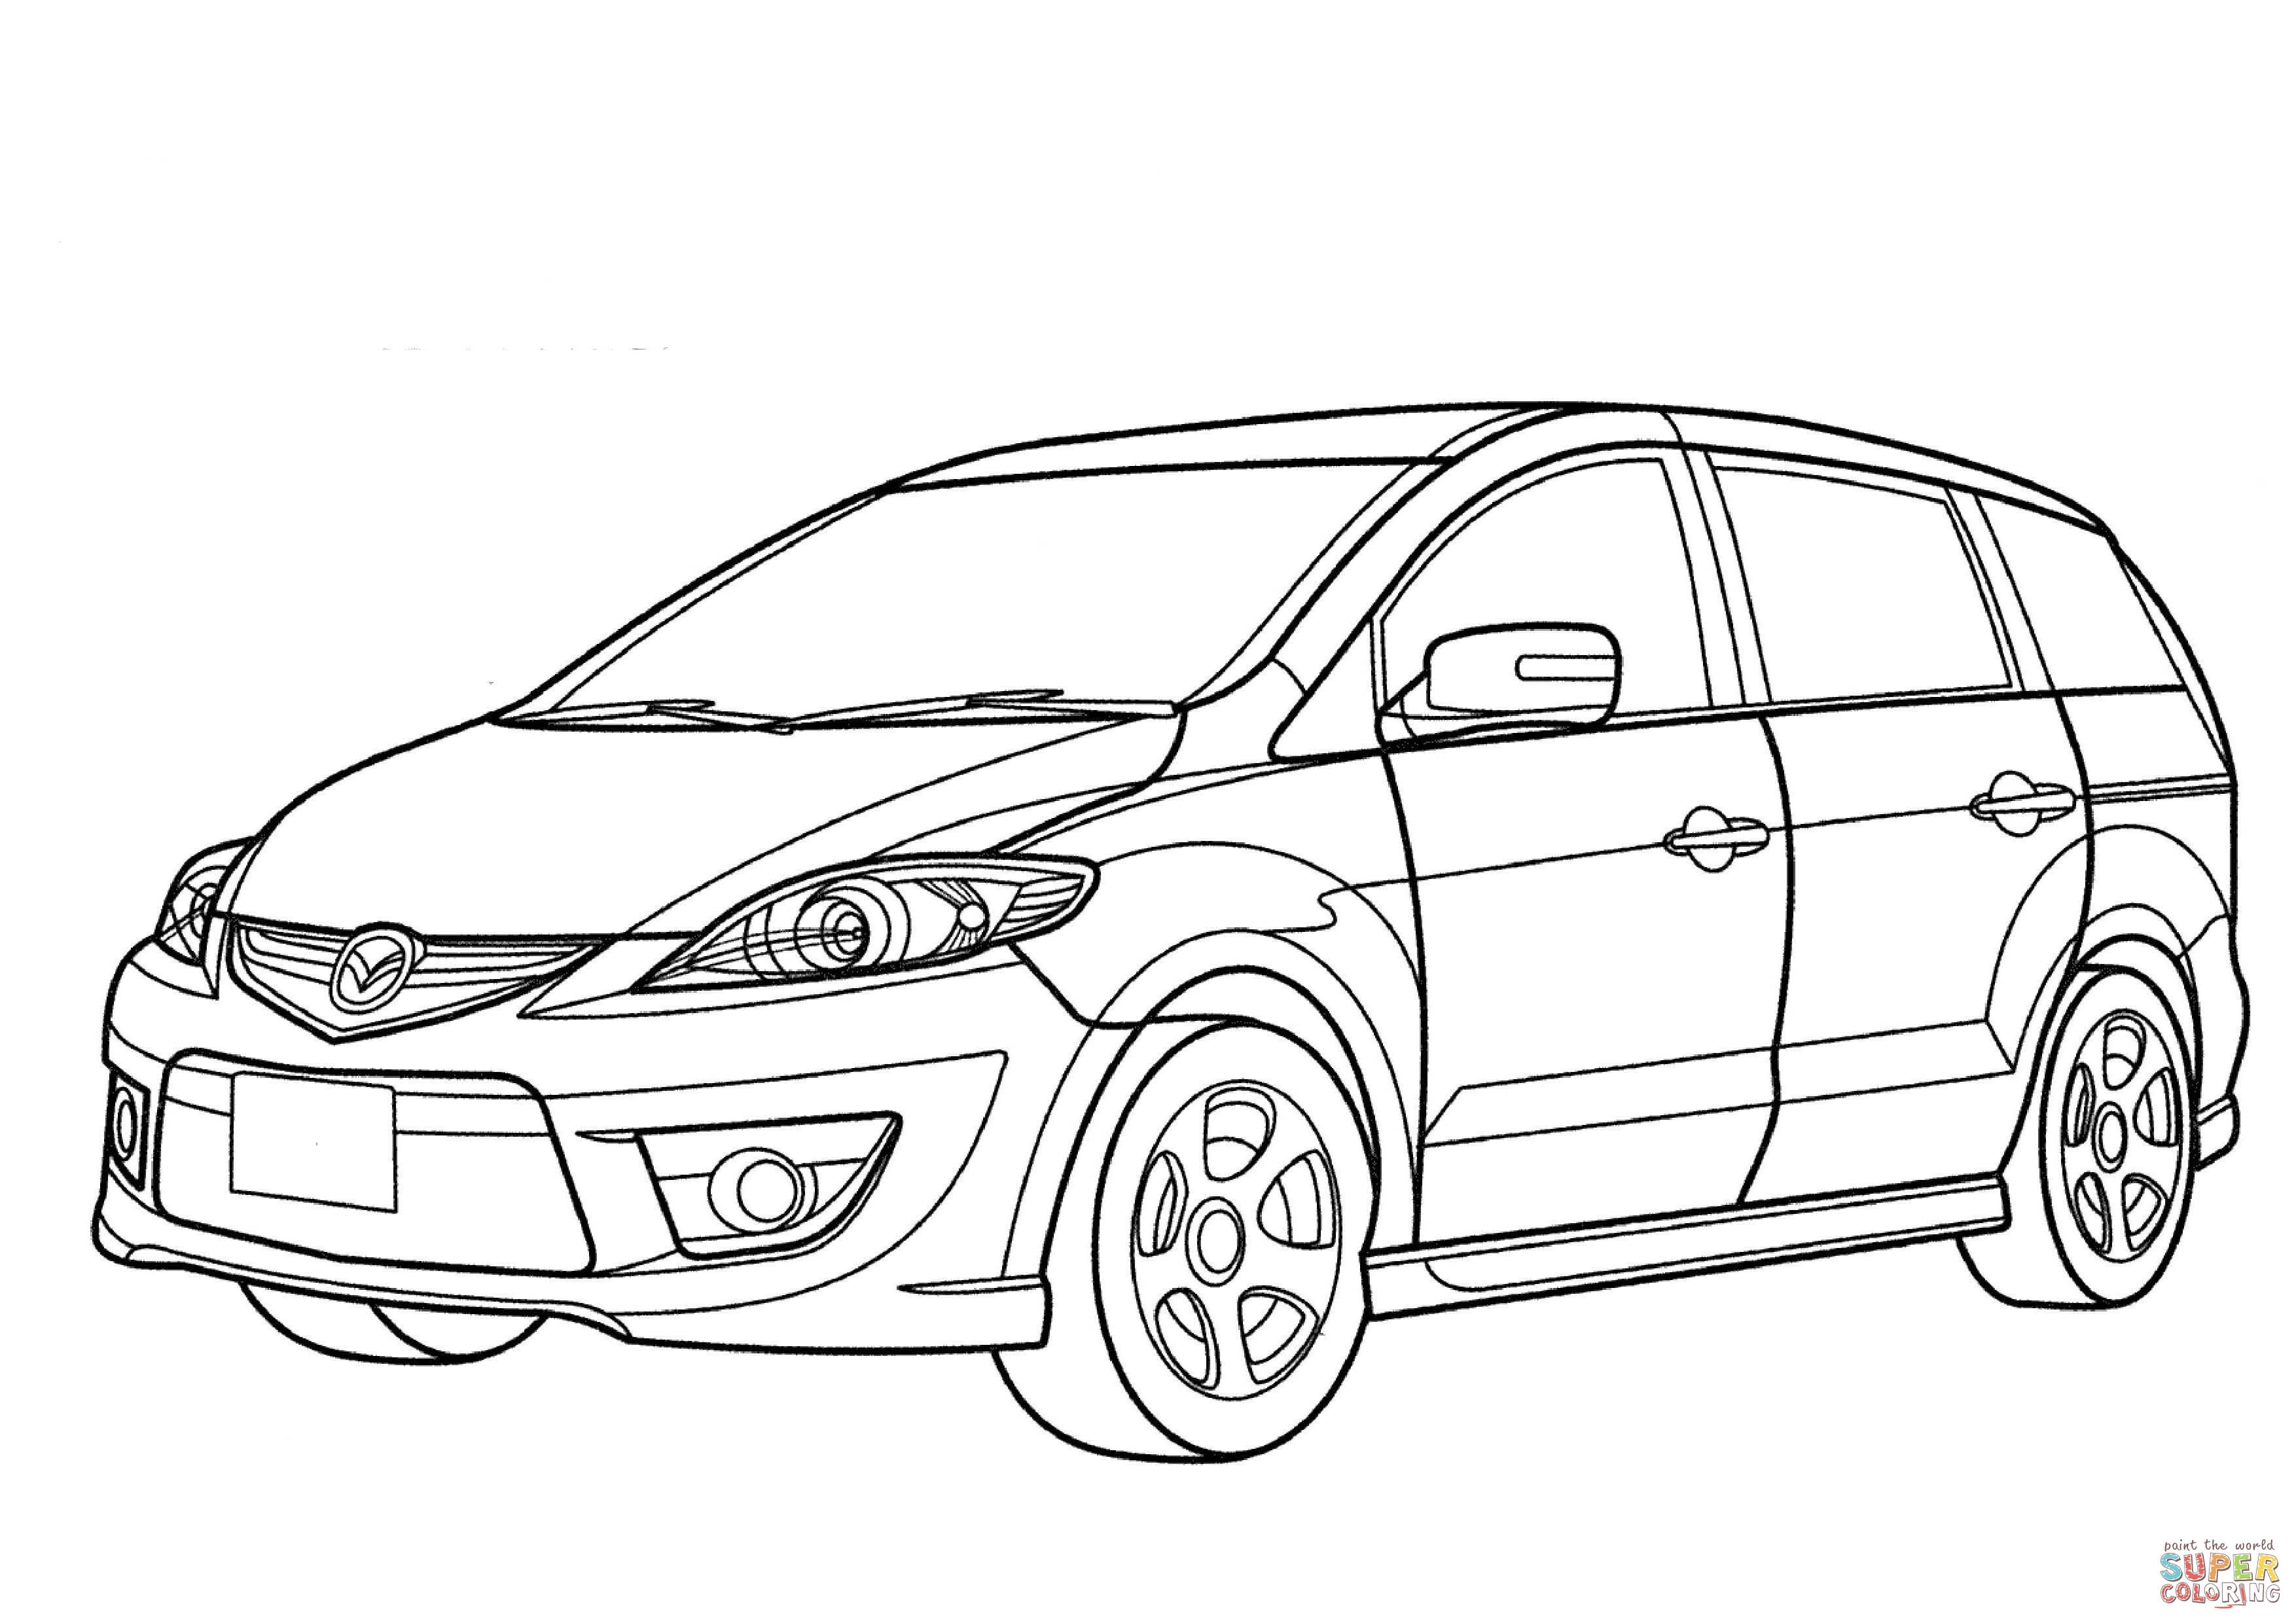 3508x2480 mazda premacy minivan coloring page free printable coloring pages